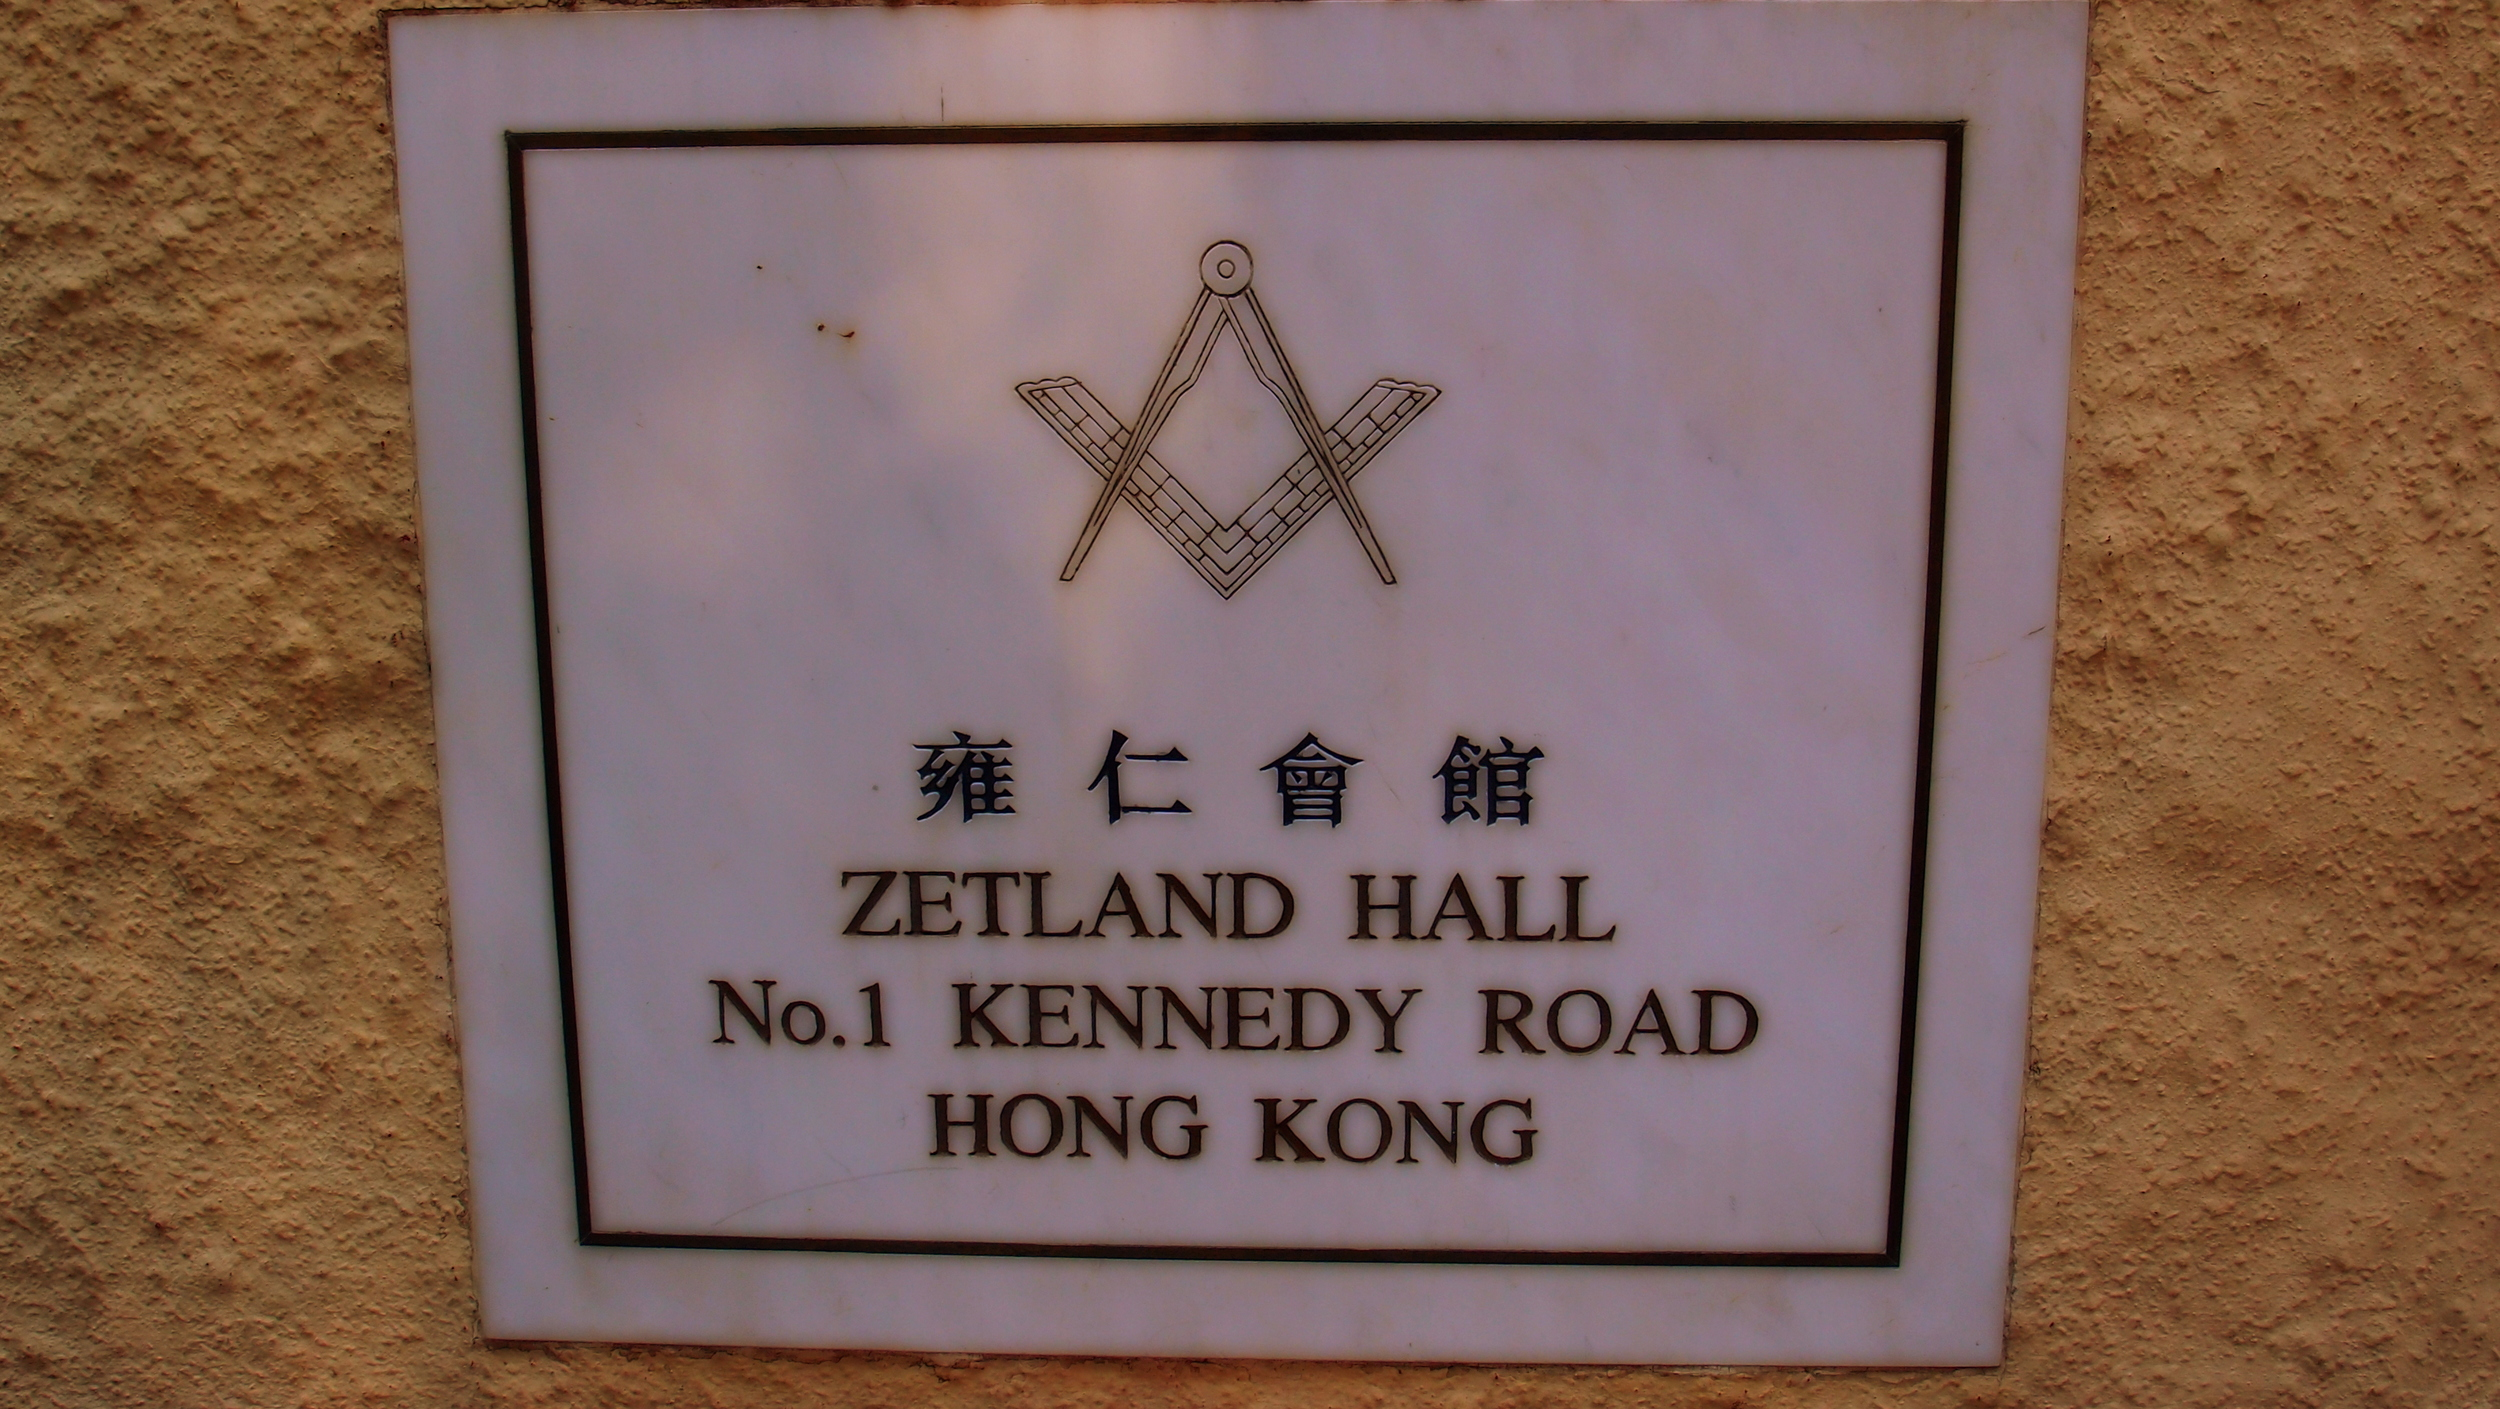 Zetland Hall Masonic Lodge